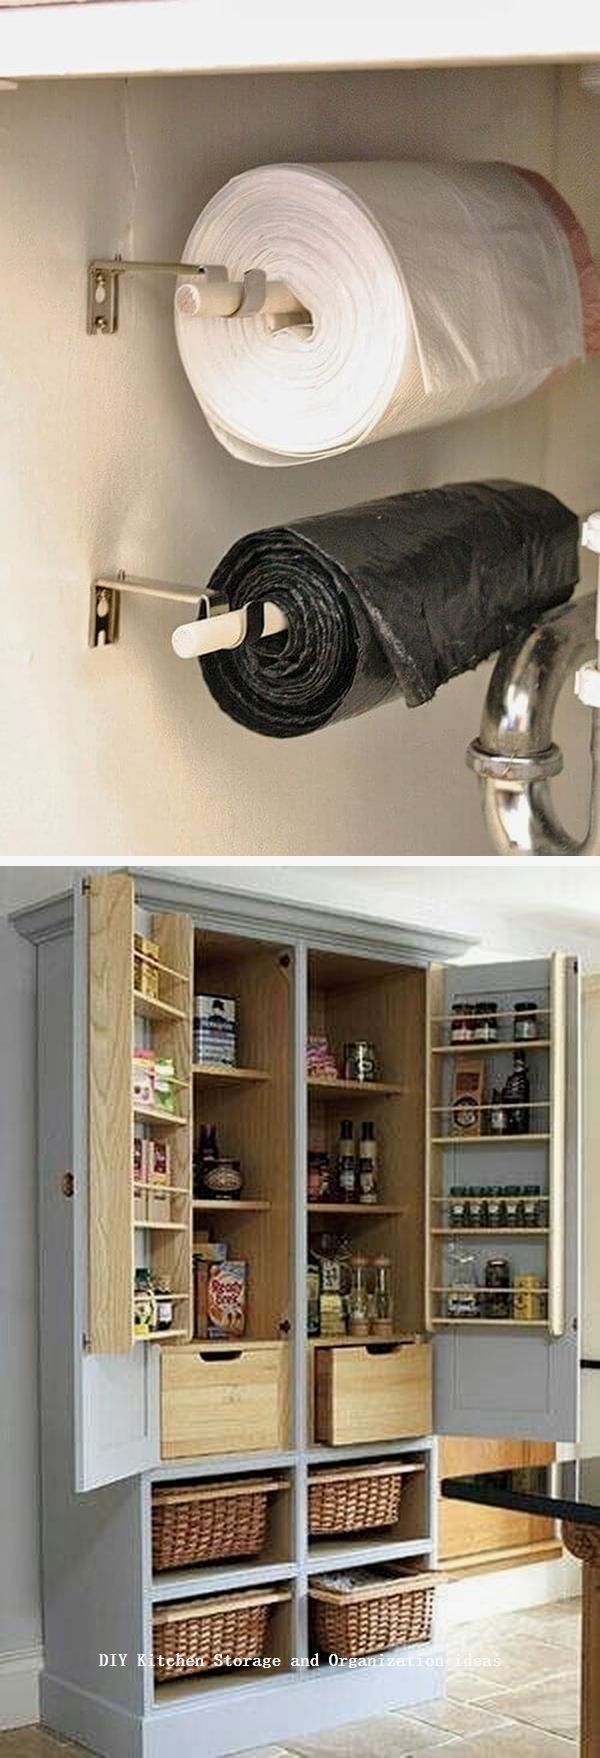 9 Diy Kitchen Storage Ideas For More Space in the Kitchen ...